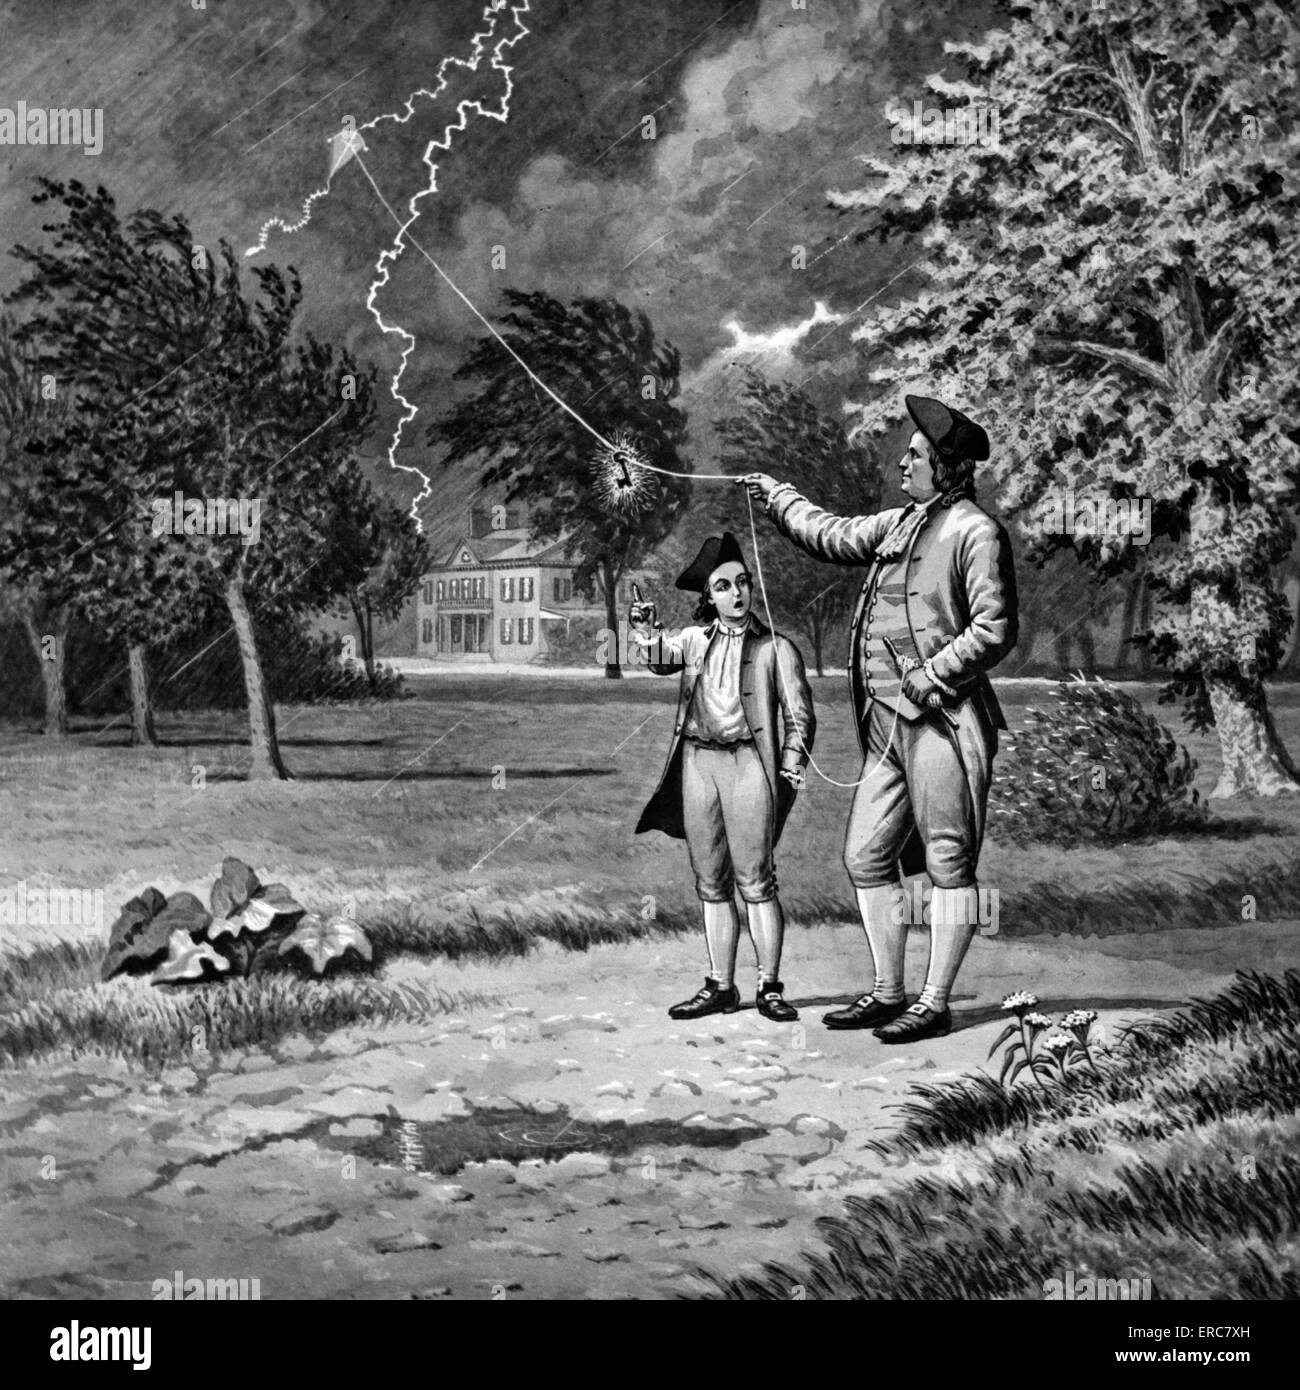 1700s 1752 BENJAMIN FRANKLIN KITE AND KEY ELECTRICITY EXPERIMENT DURING  LIGHTNING STORM PHILADELPHIA PENNSYLVANIA USA